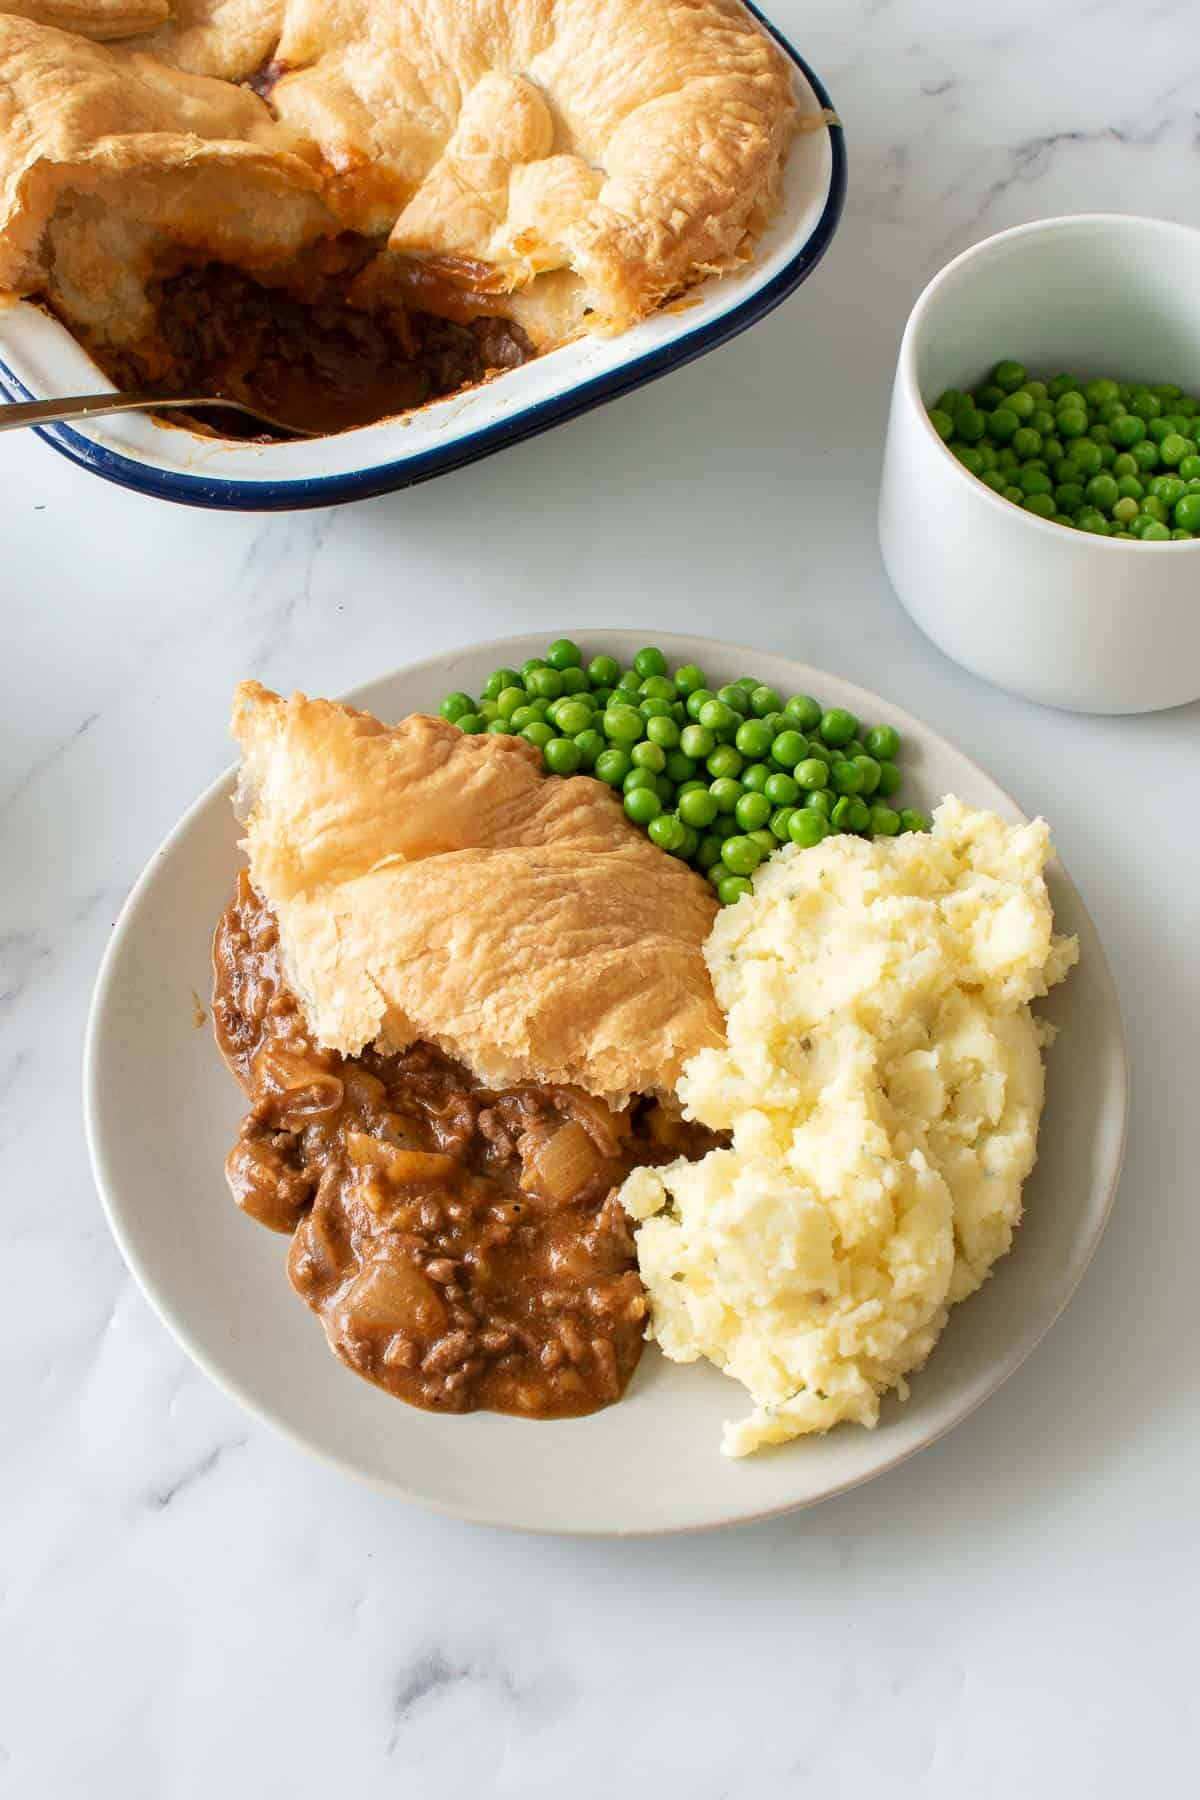 Peas, mash and pie on a plate.